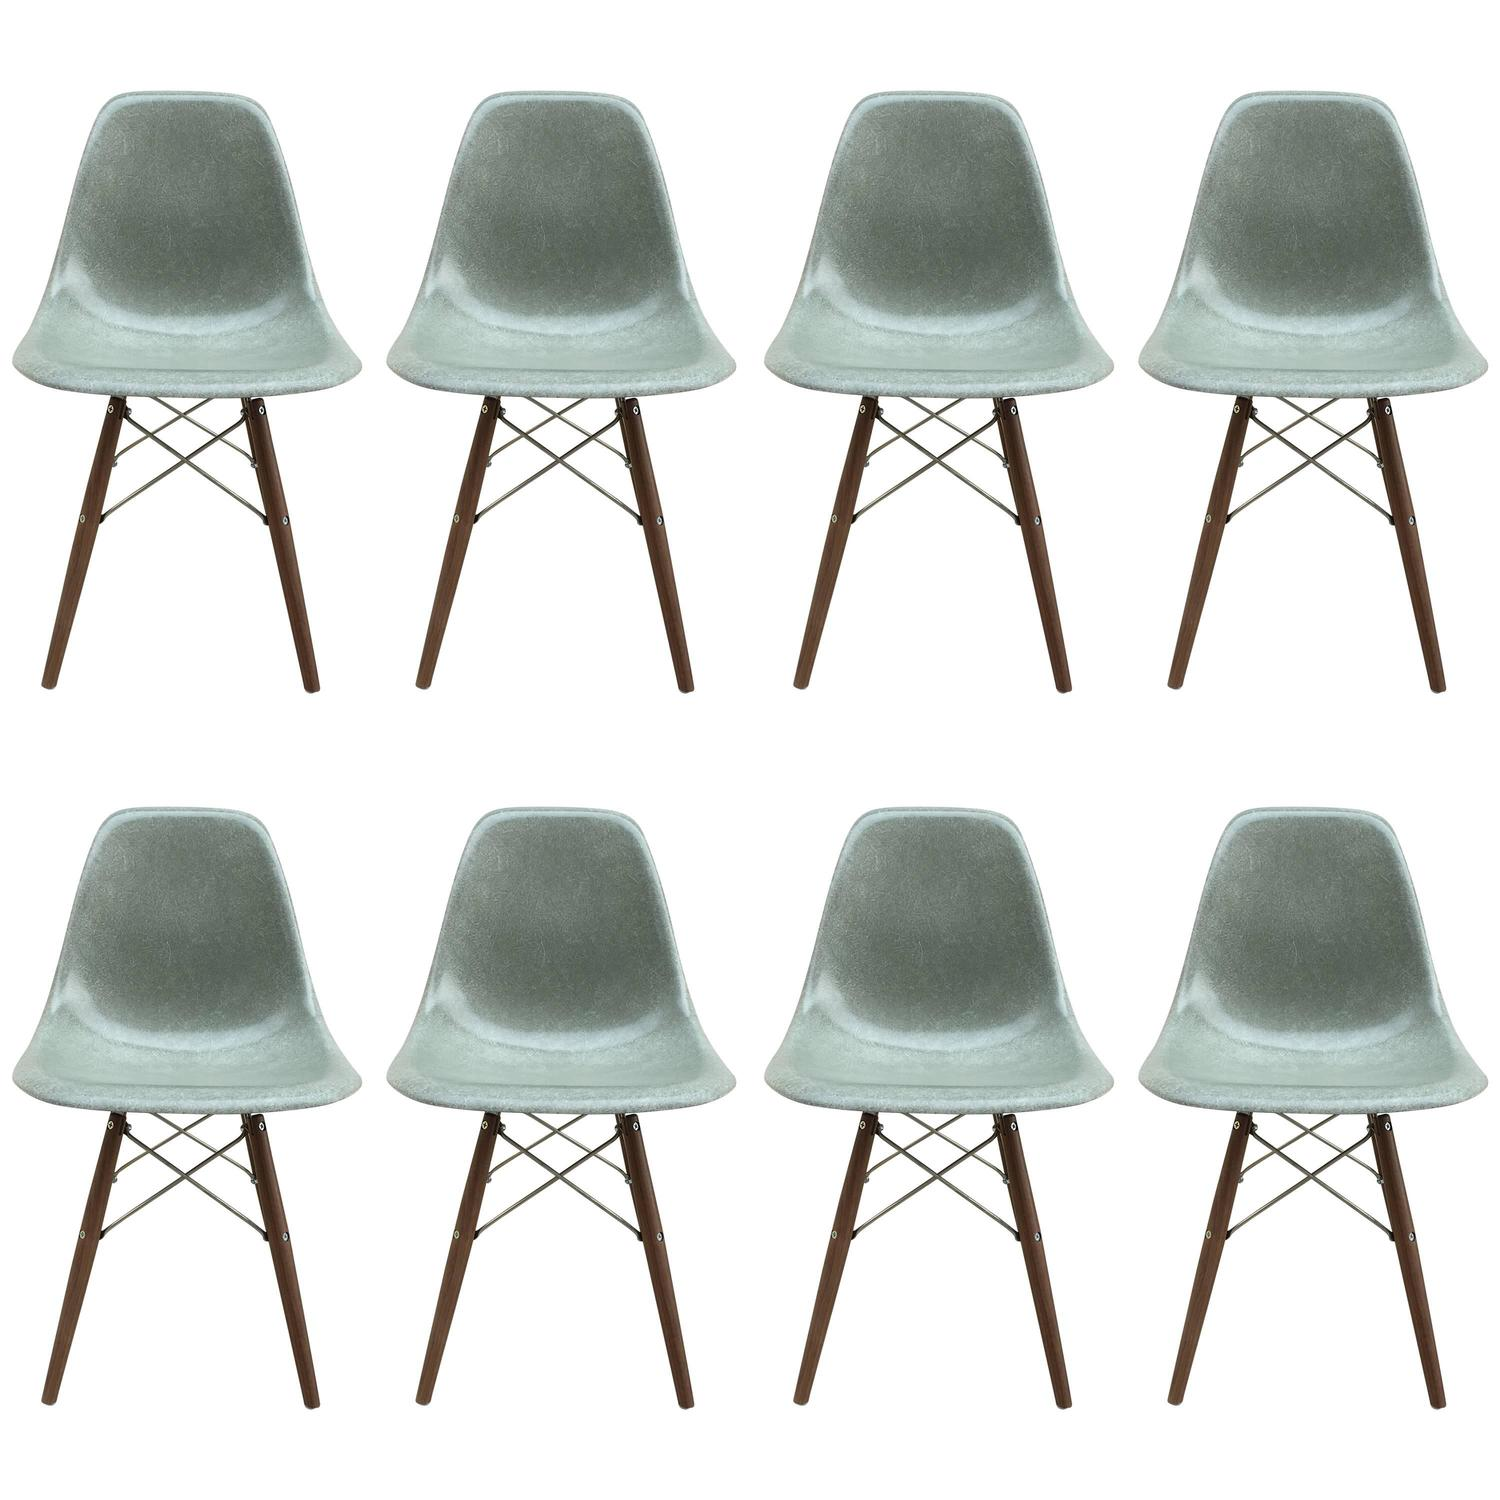 eight herman miller eames seafoam green dining chairs for sale at